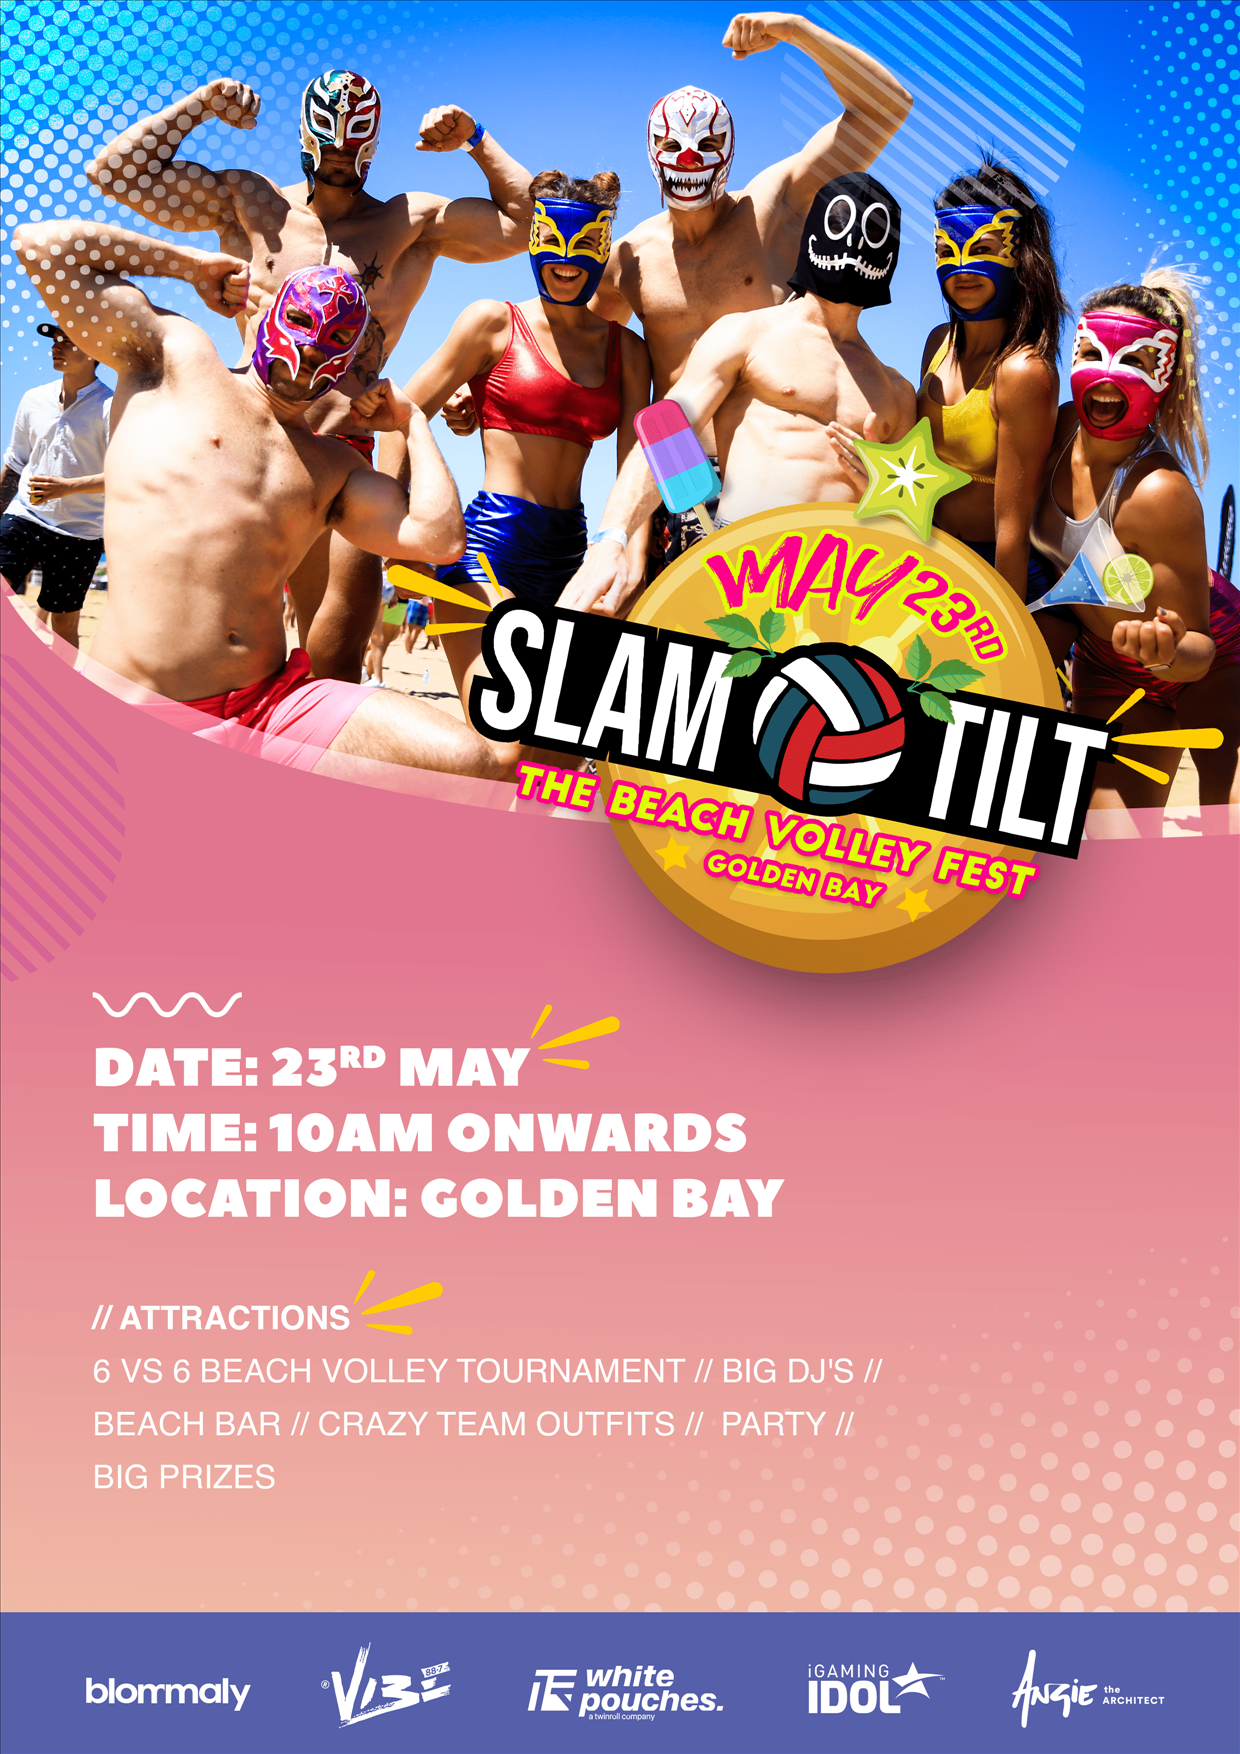 Slam tilt - The Beach Volley Fest